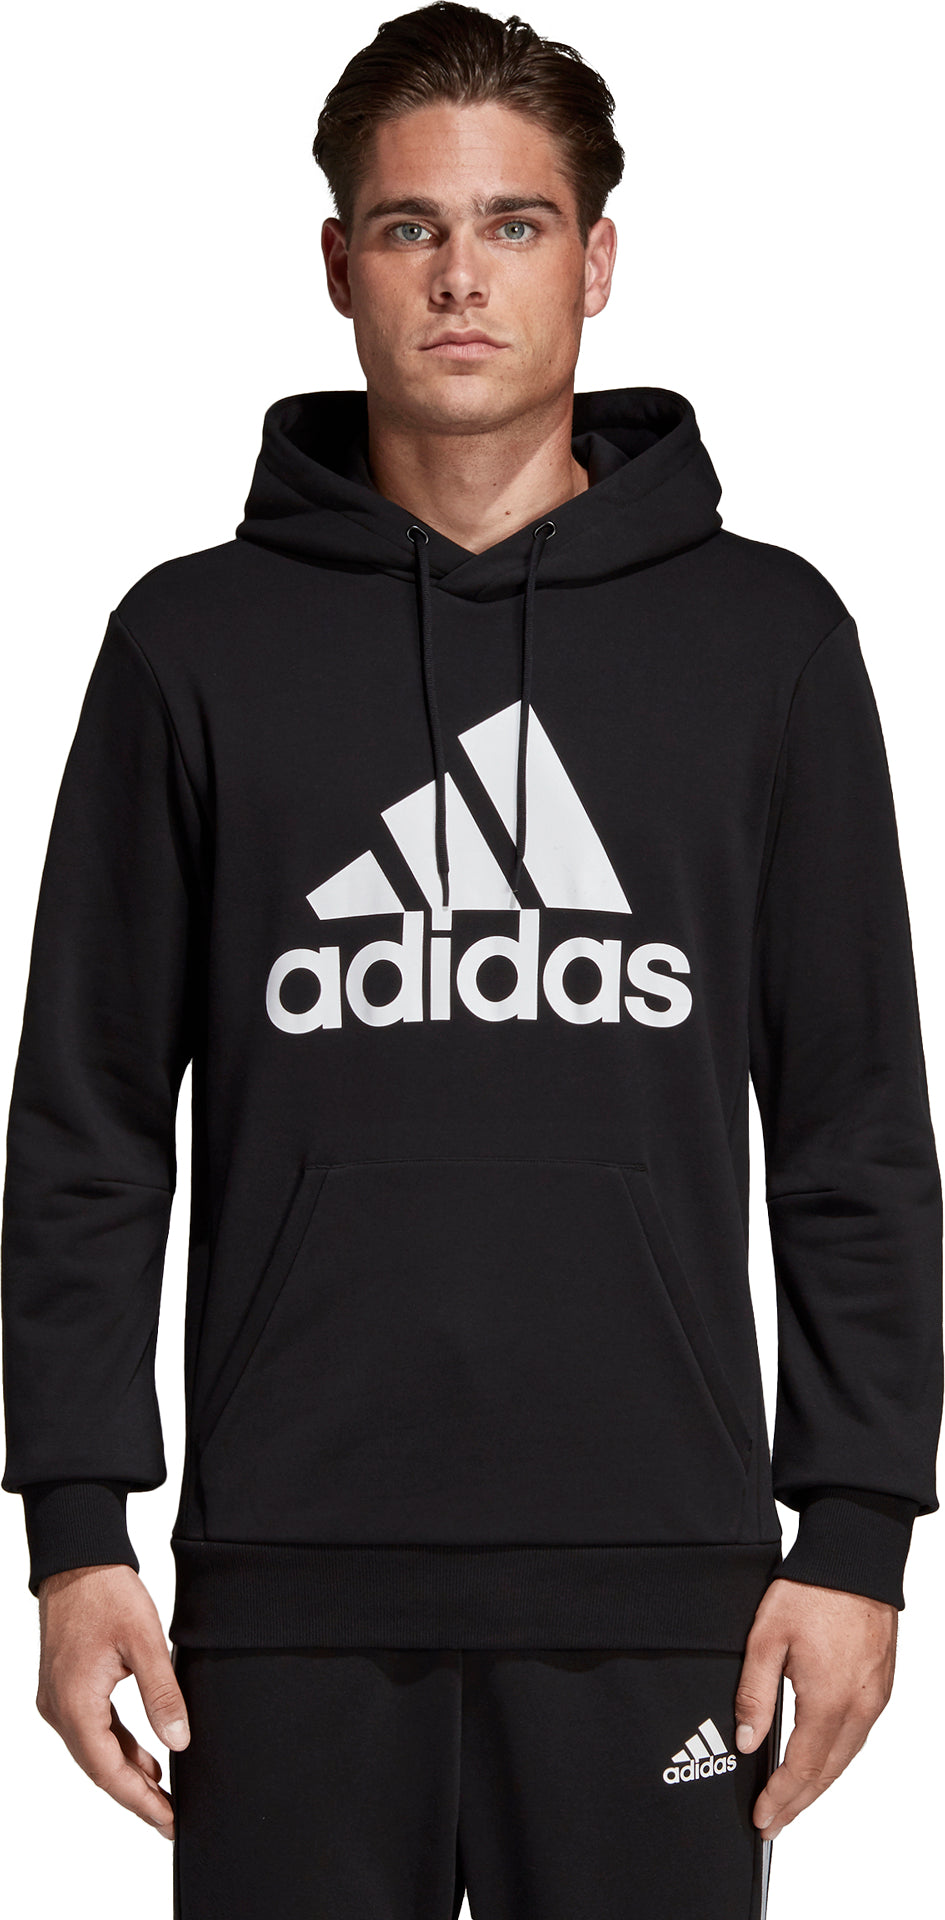 18728b15841ce4 Adidas Must Haves Badge of Sport Hoodie - Men's Black - White ...